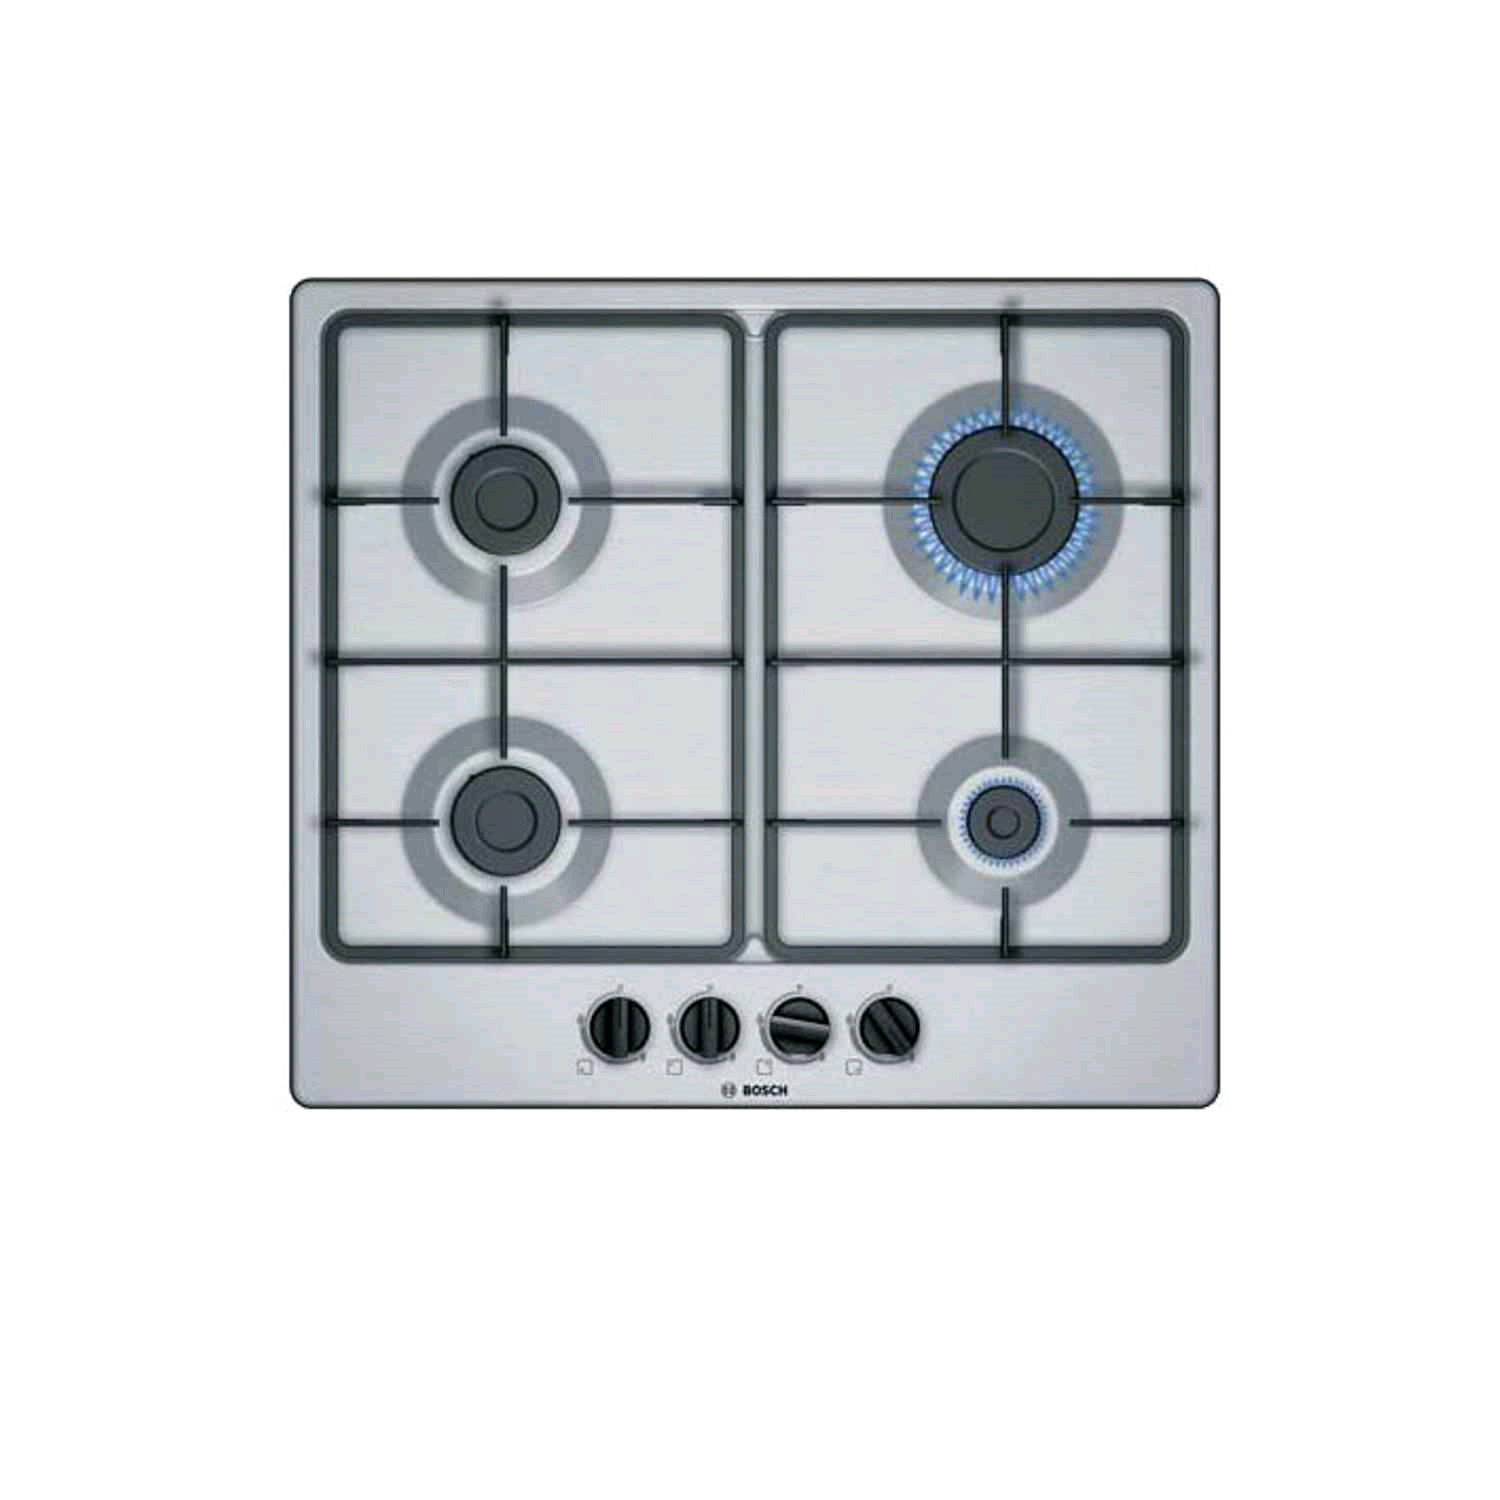 Bosch Gas 4 Hob LPG Jets inc Stainless Steel